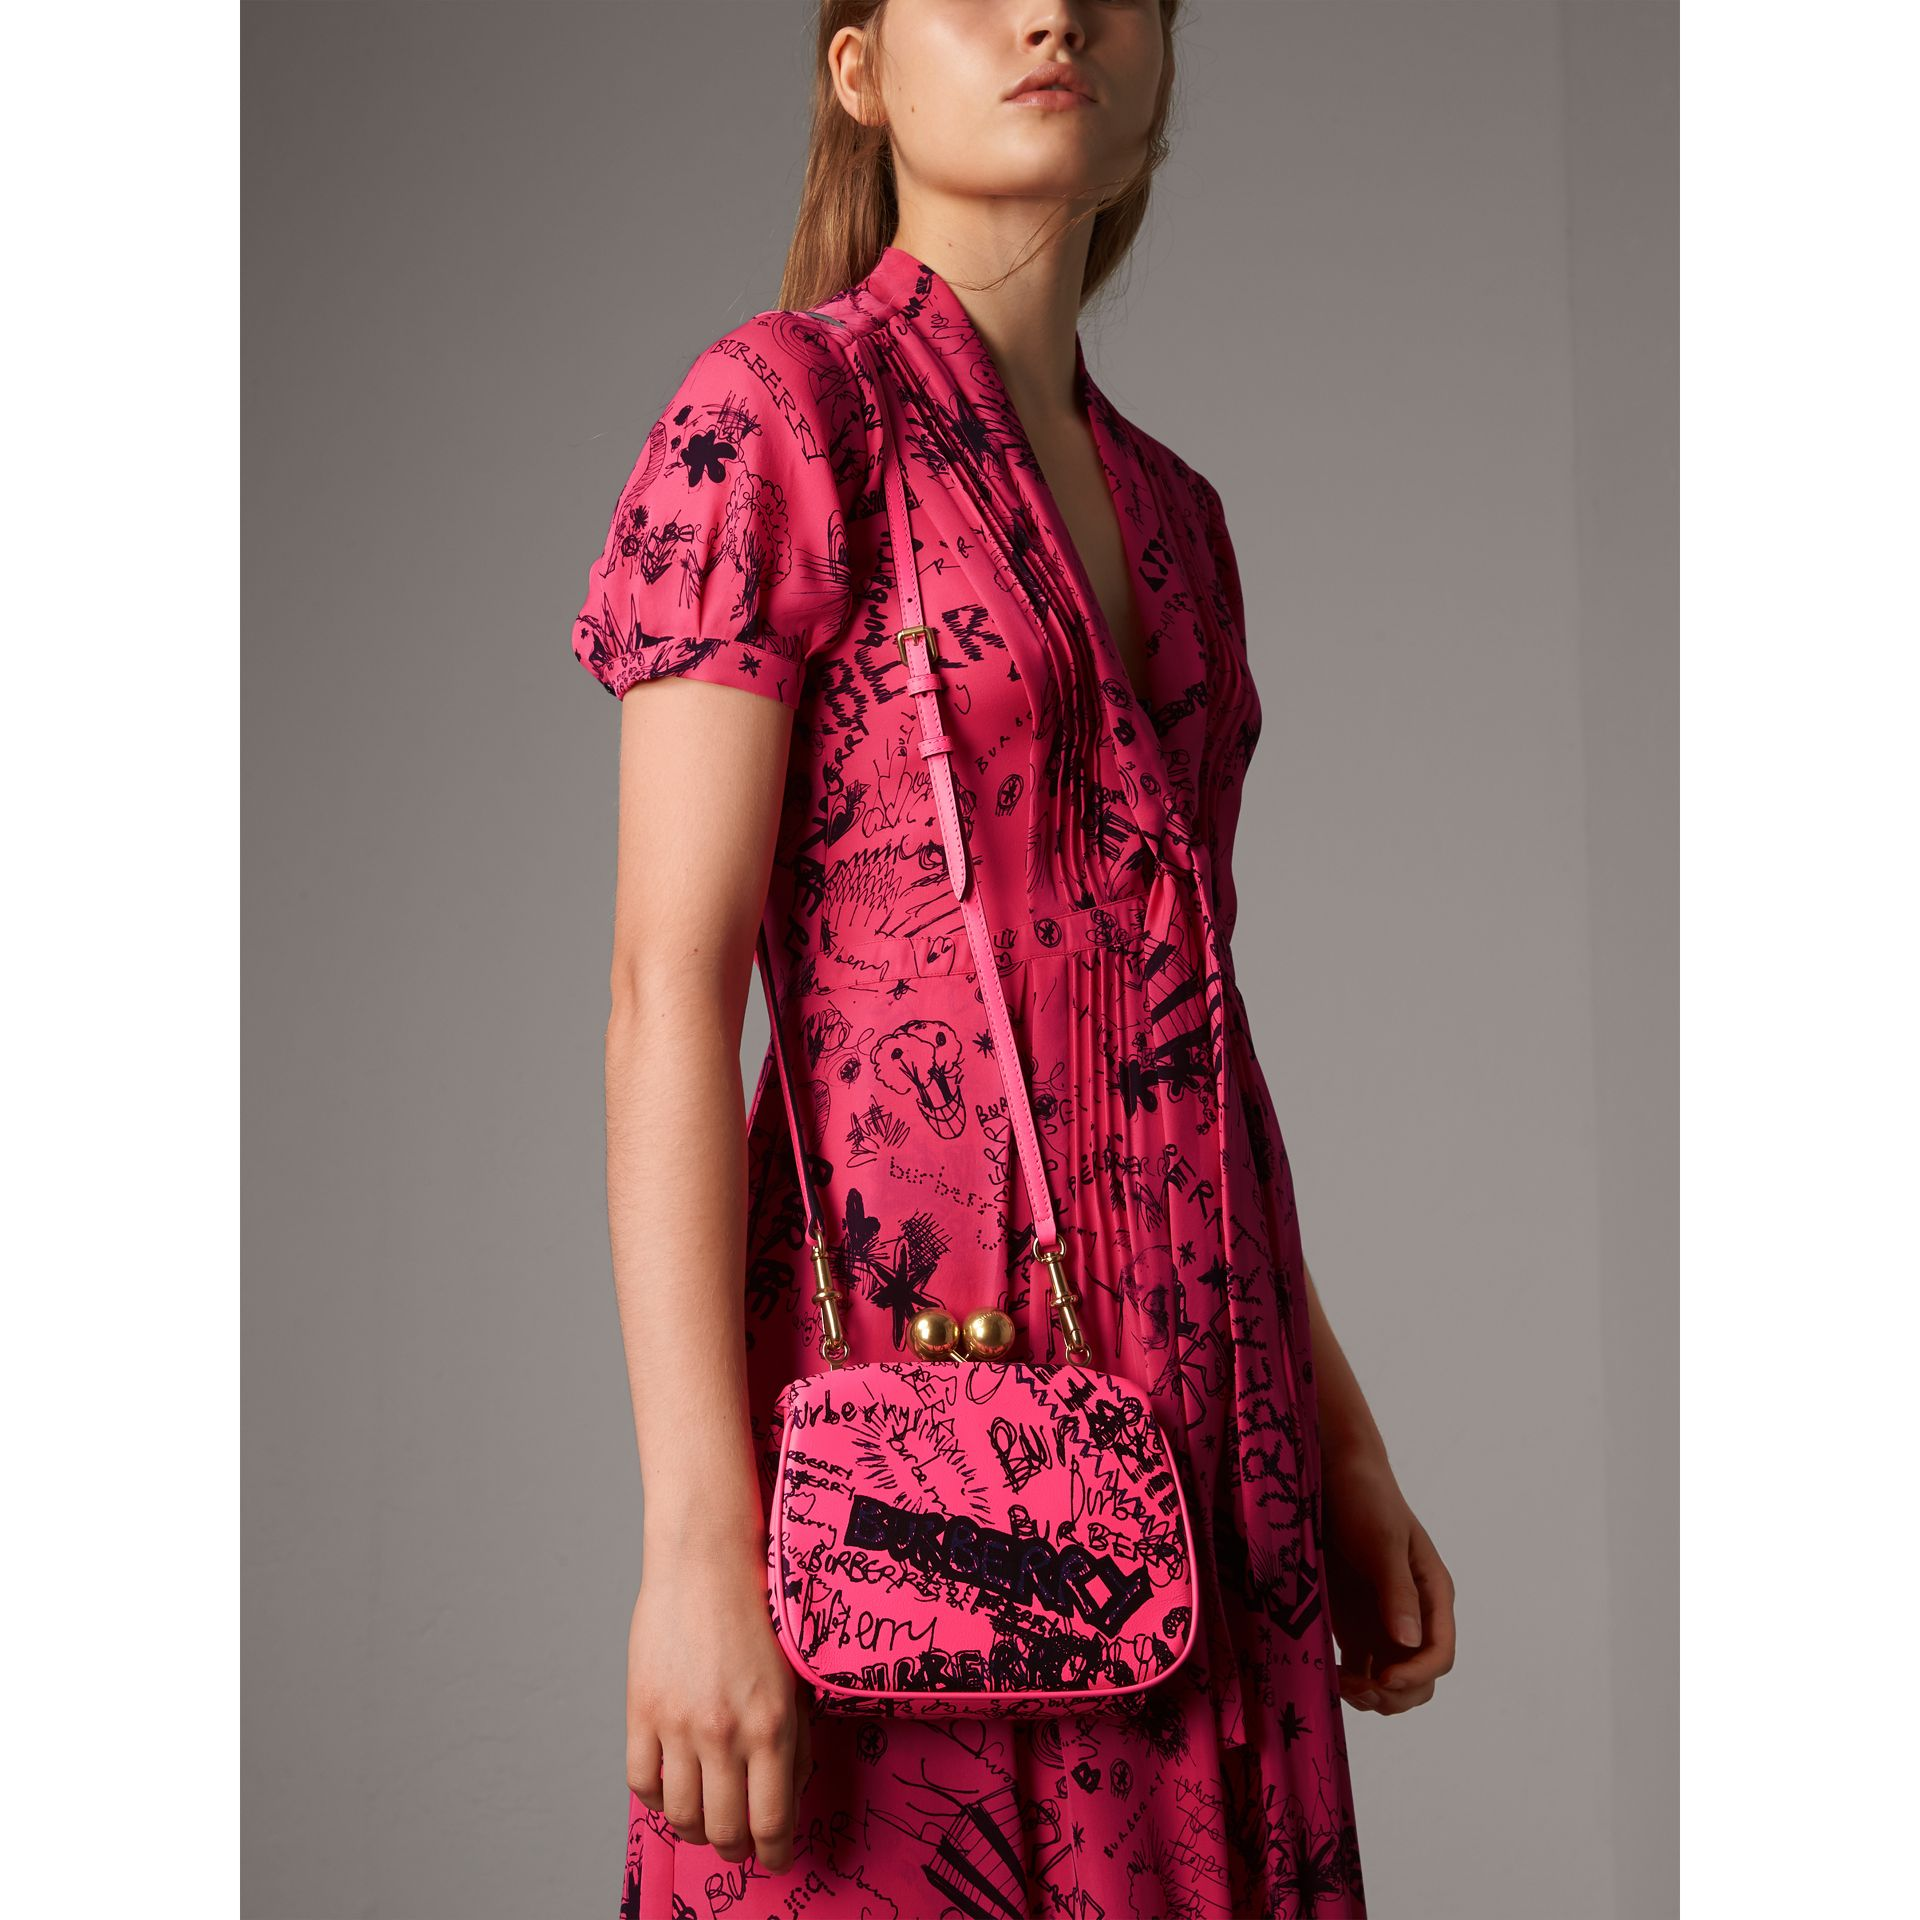 Small Doodle Print Leather Metal Frame Clutch Bag in Neon Pink - Women | Burberry - gallery image 3